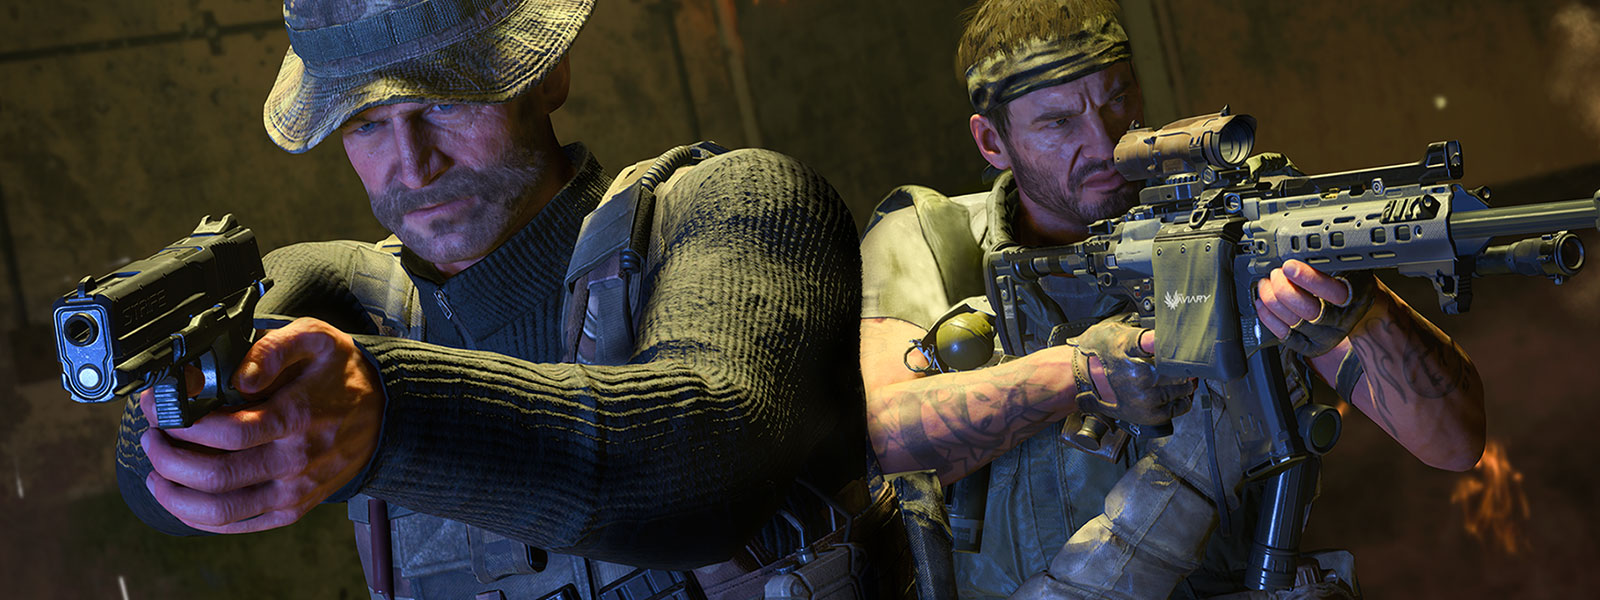 Two characters in tactical gear holding guns